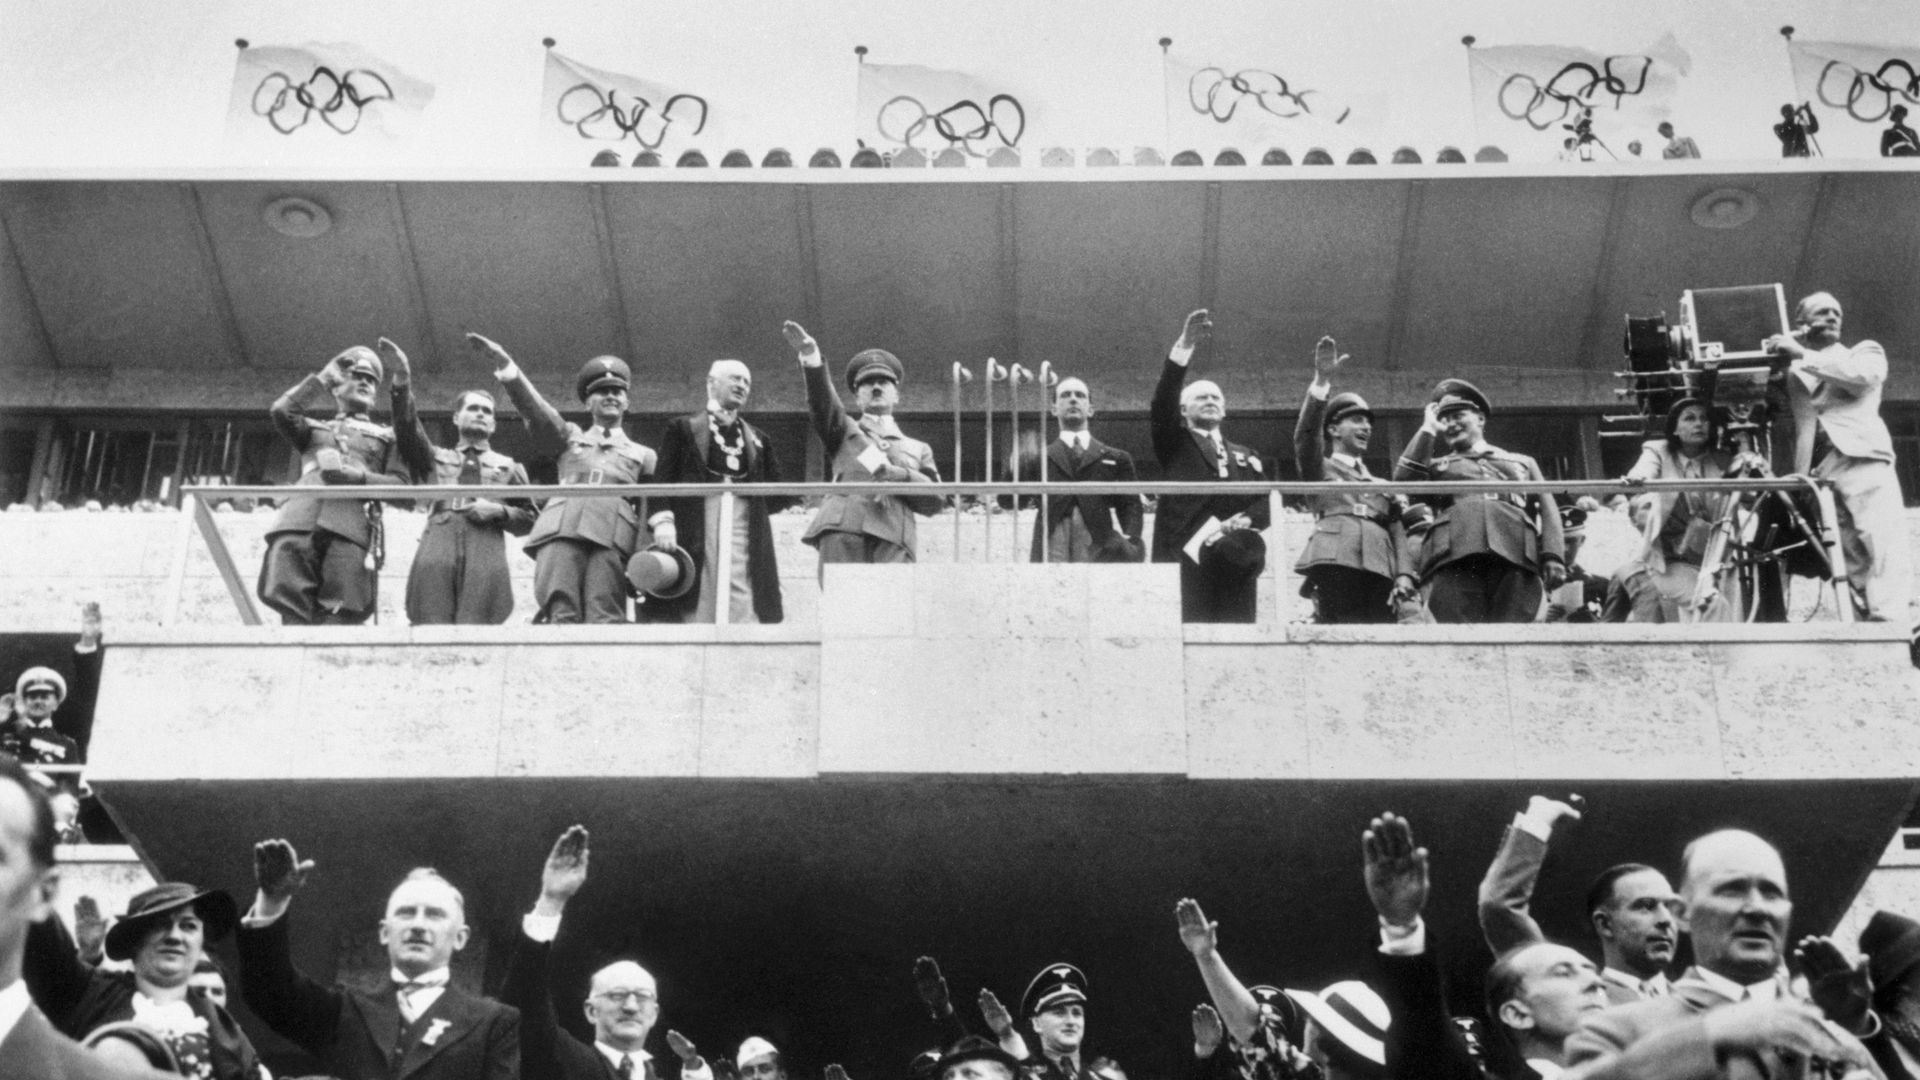 PUTIN WORLD CUP COMPARED TO HITLER OLYMPICS